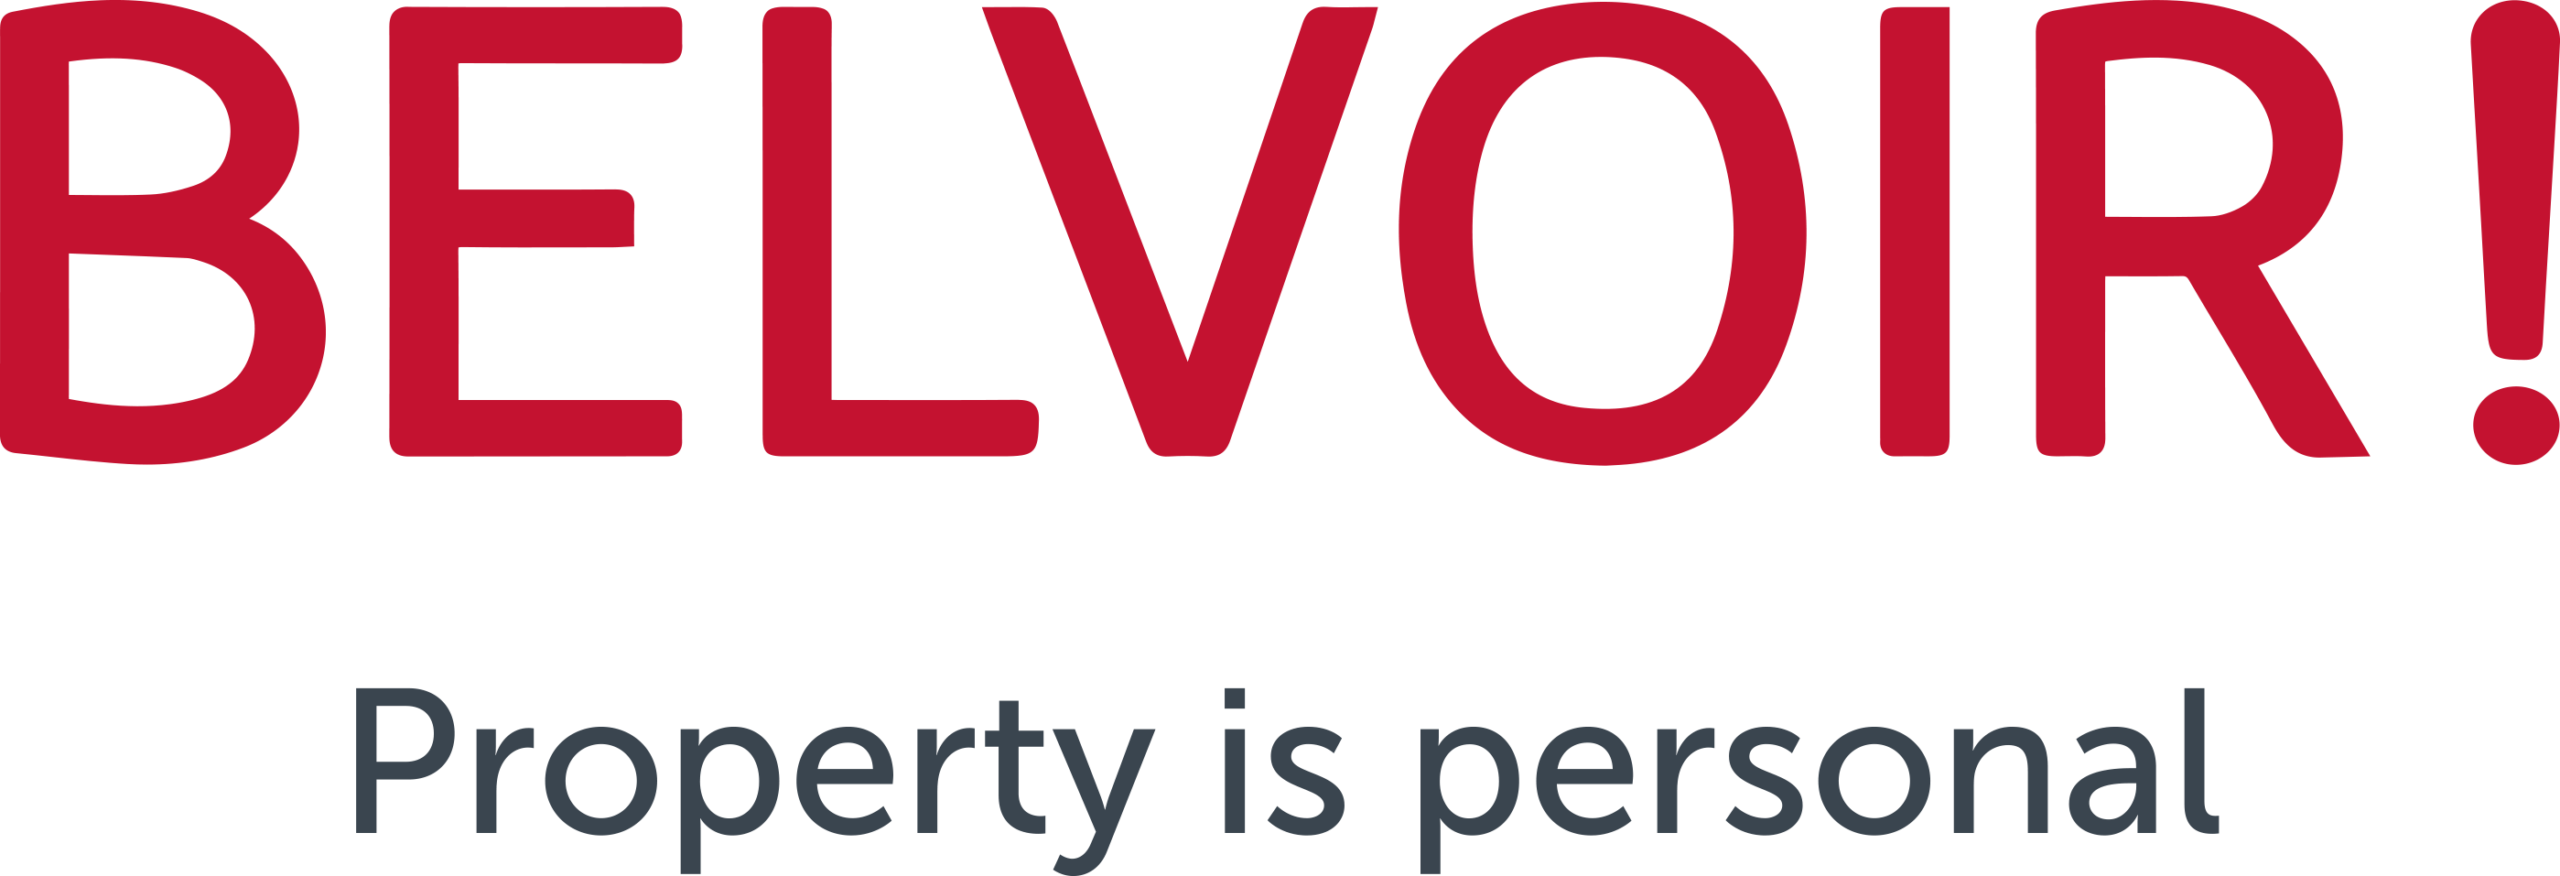 Belvoir Q3 rental index reveals rise in the number of families renting - https://roomslocal.co.uk/blog/belvoir-q3-rental-index-reveals-rise-in-the-number-of-families-renting #releases #rental #index #reveals #rise